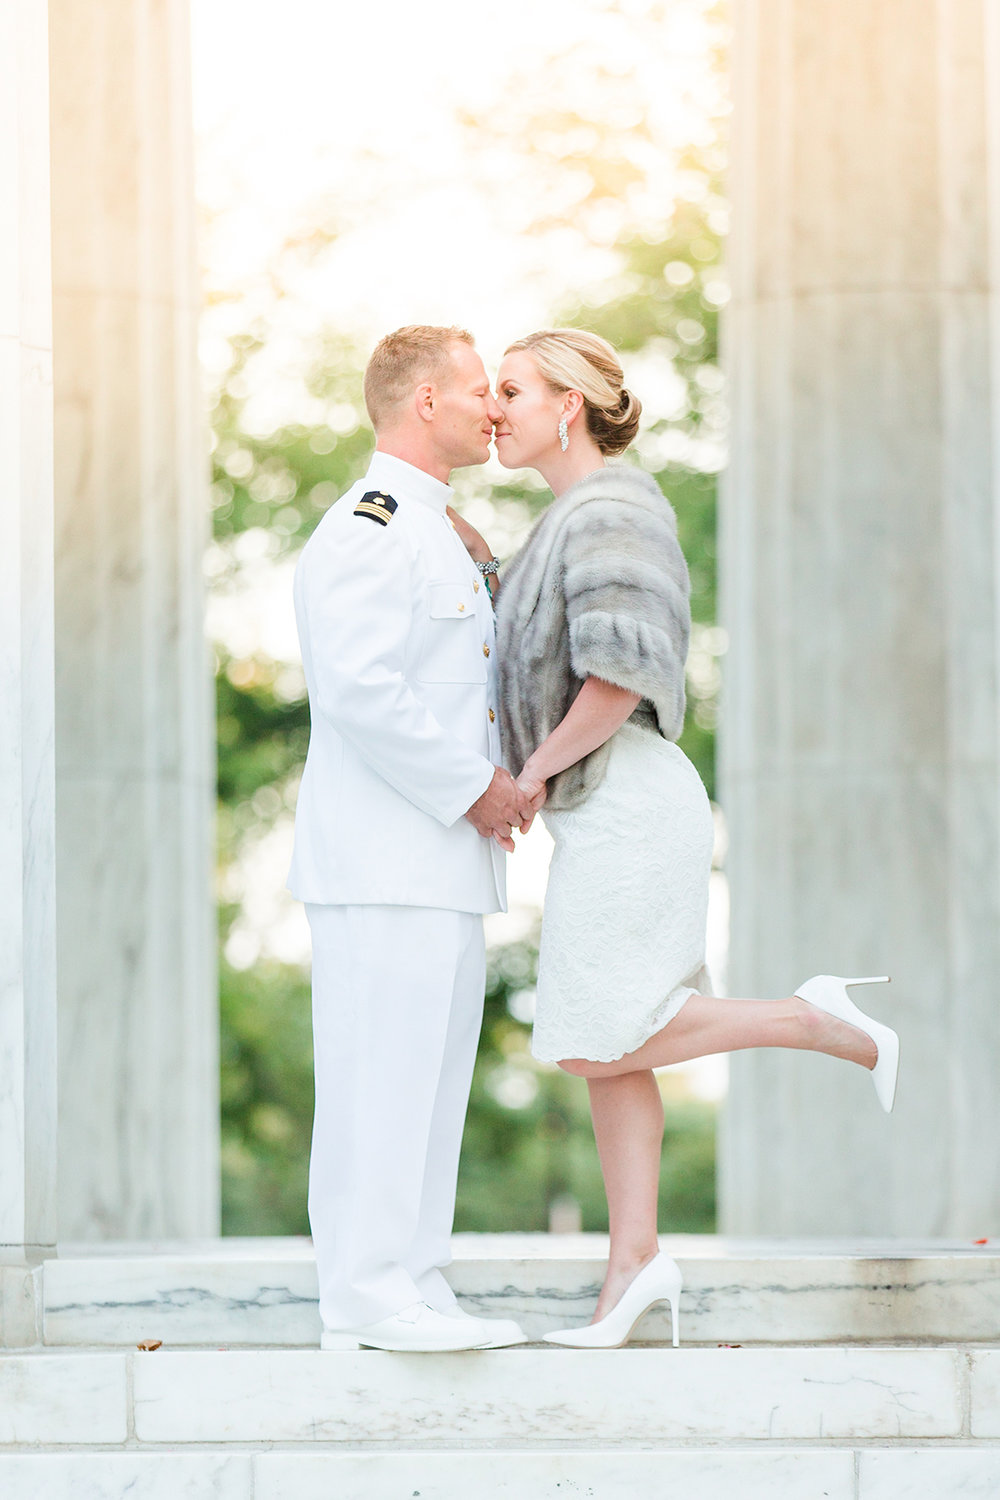 Intimate-Military-Elopement-bride-in-wrap.jpg